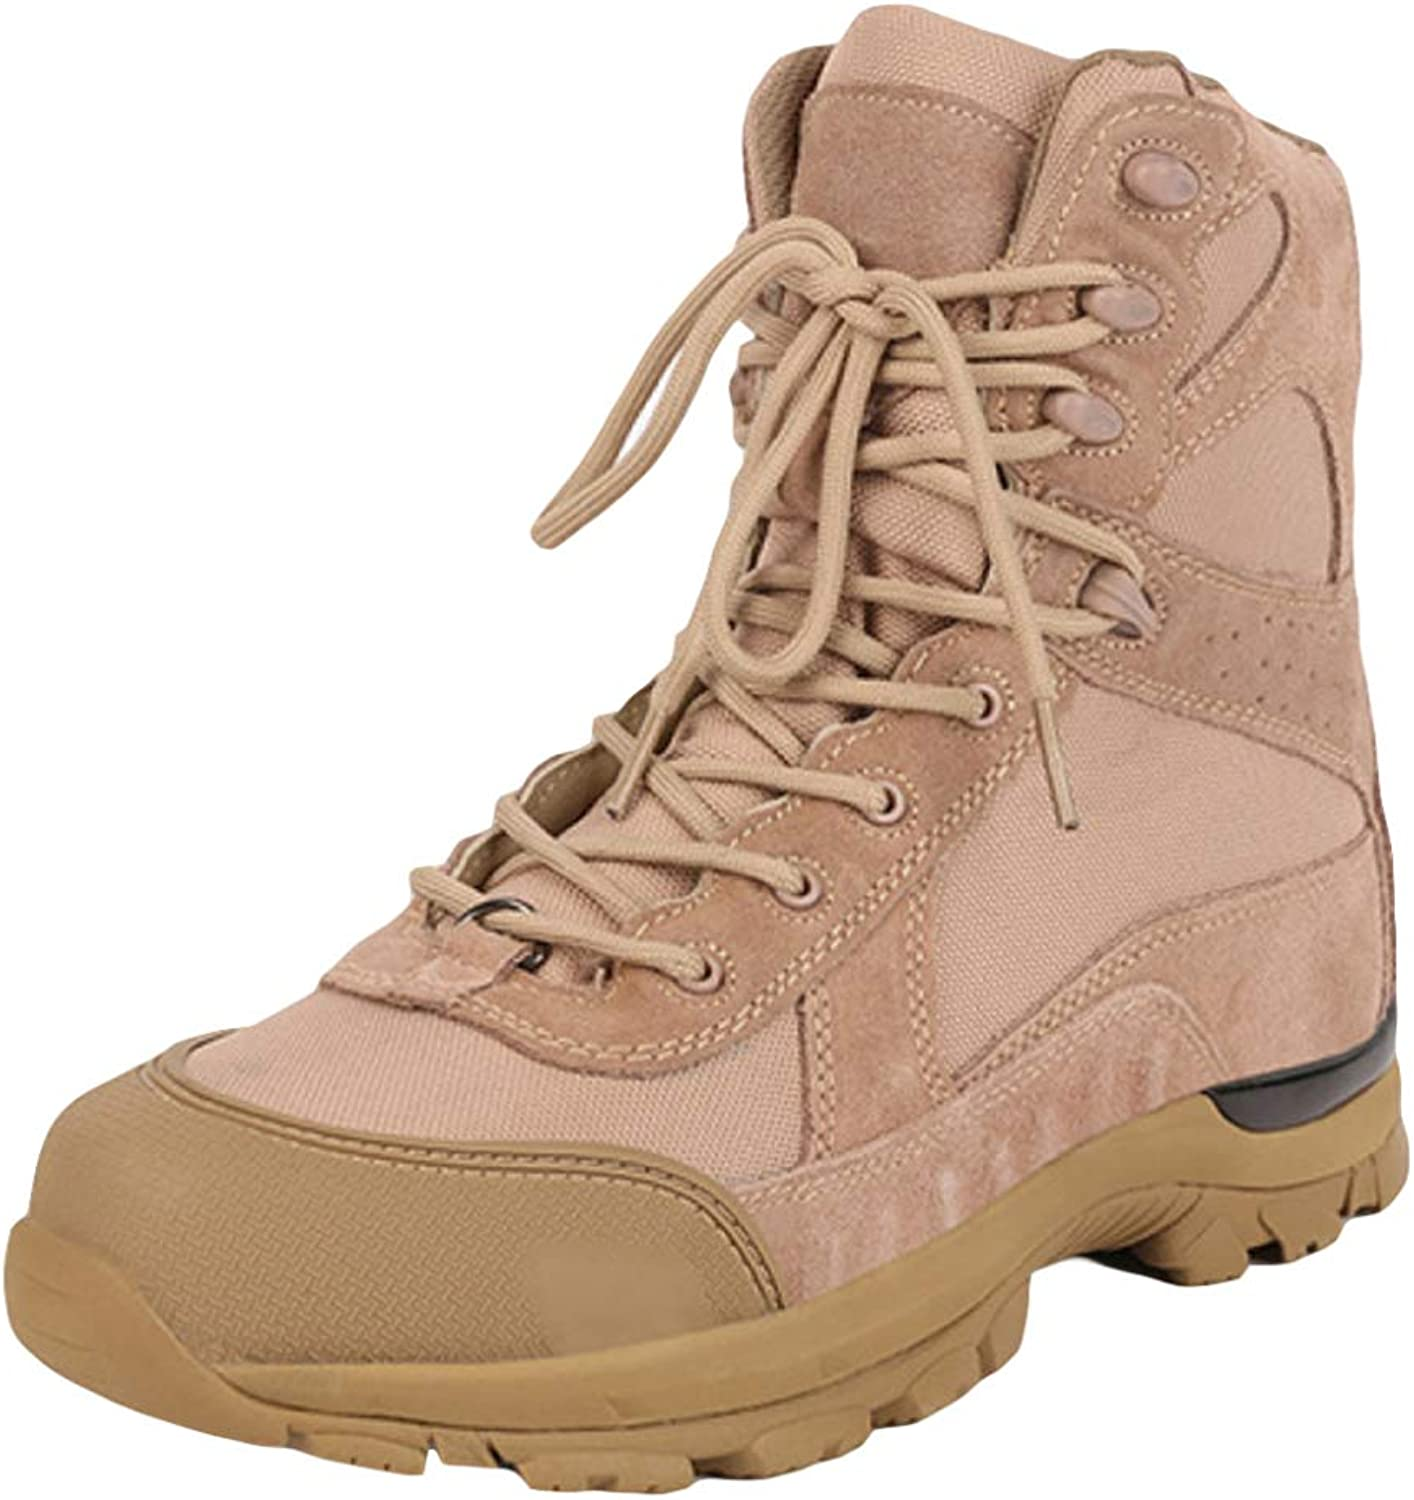 Boots Men's Chukka Martin Boots Desert Tactical Booties High Top Snow Boots Hiking Work Boots Lace-up Boots